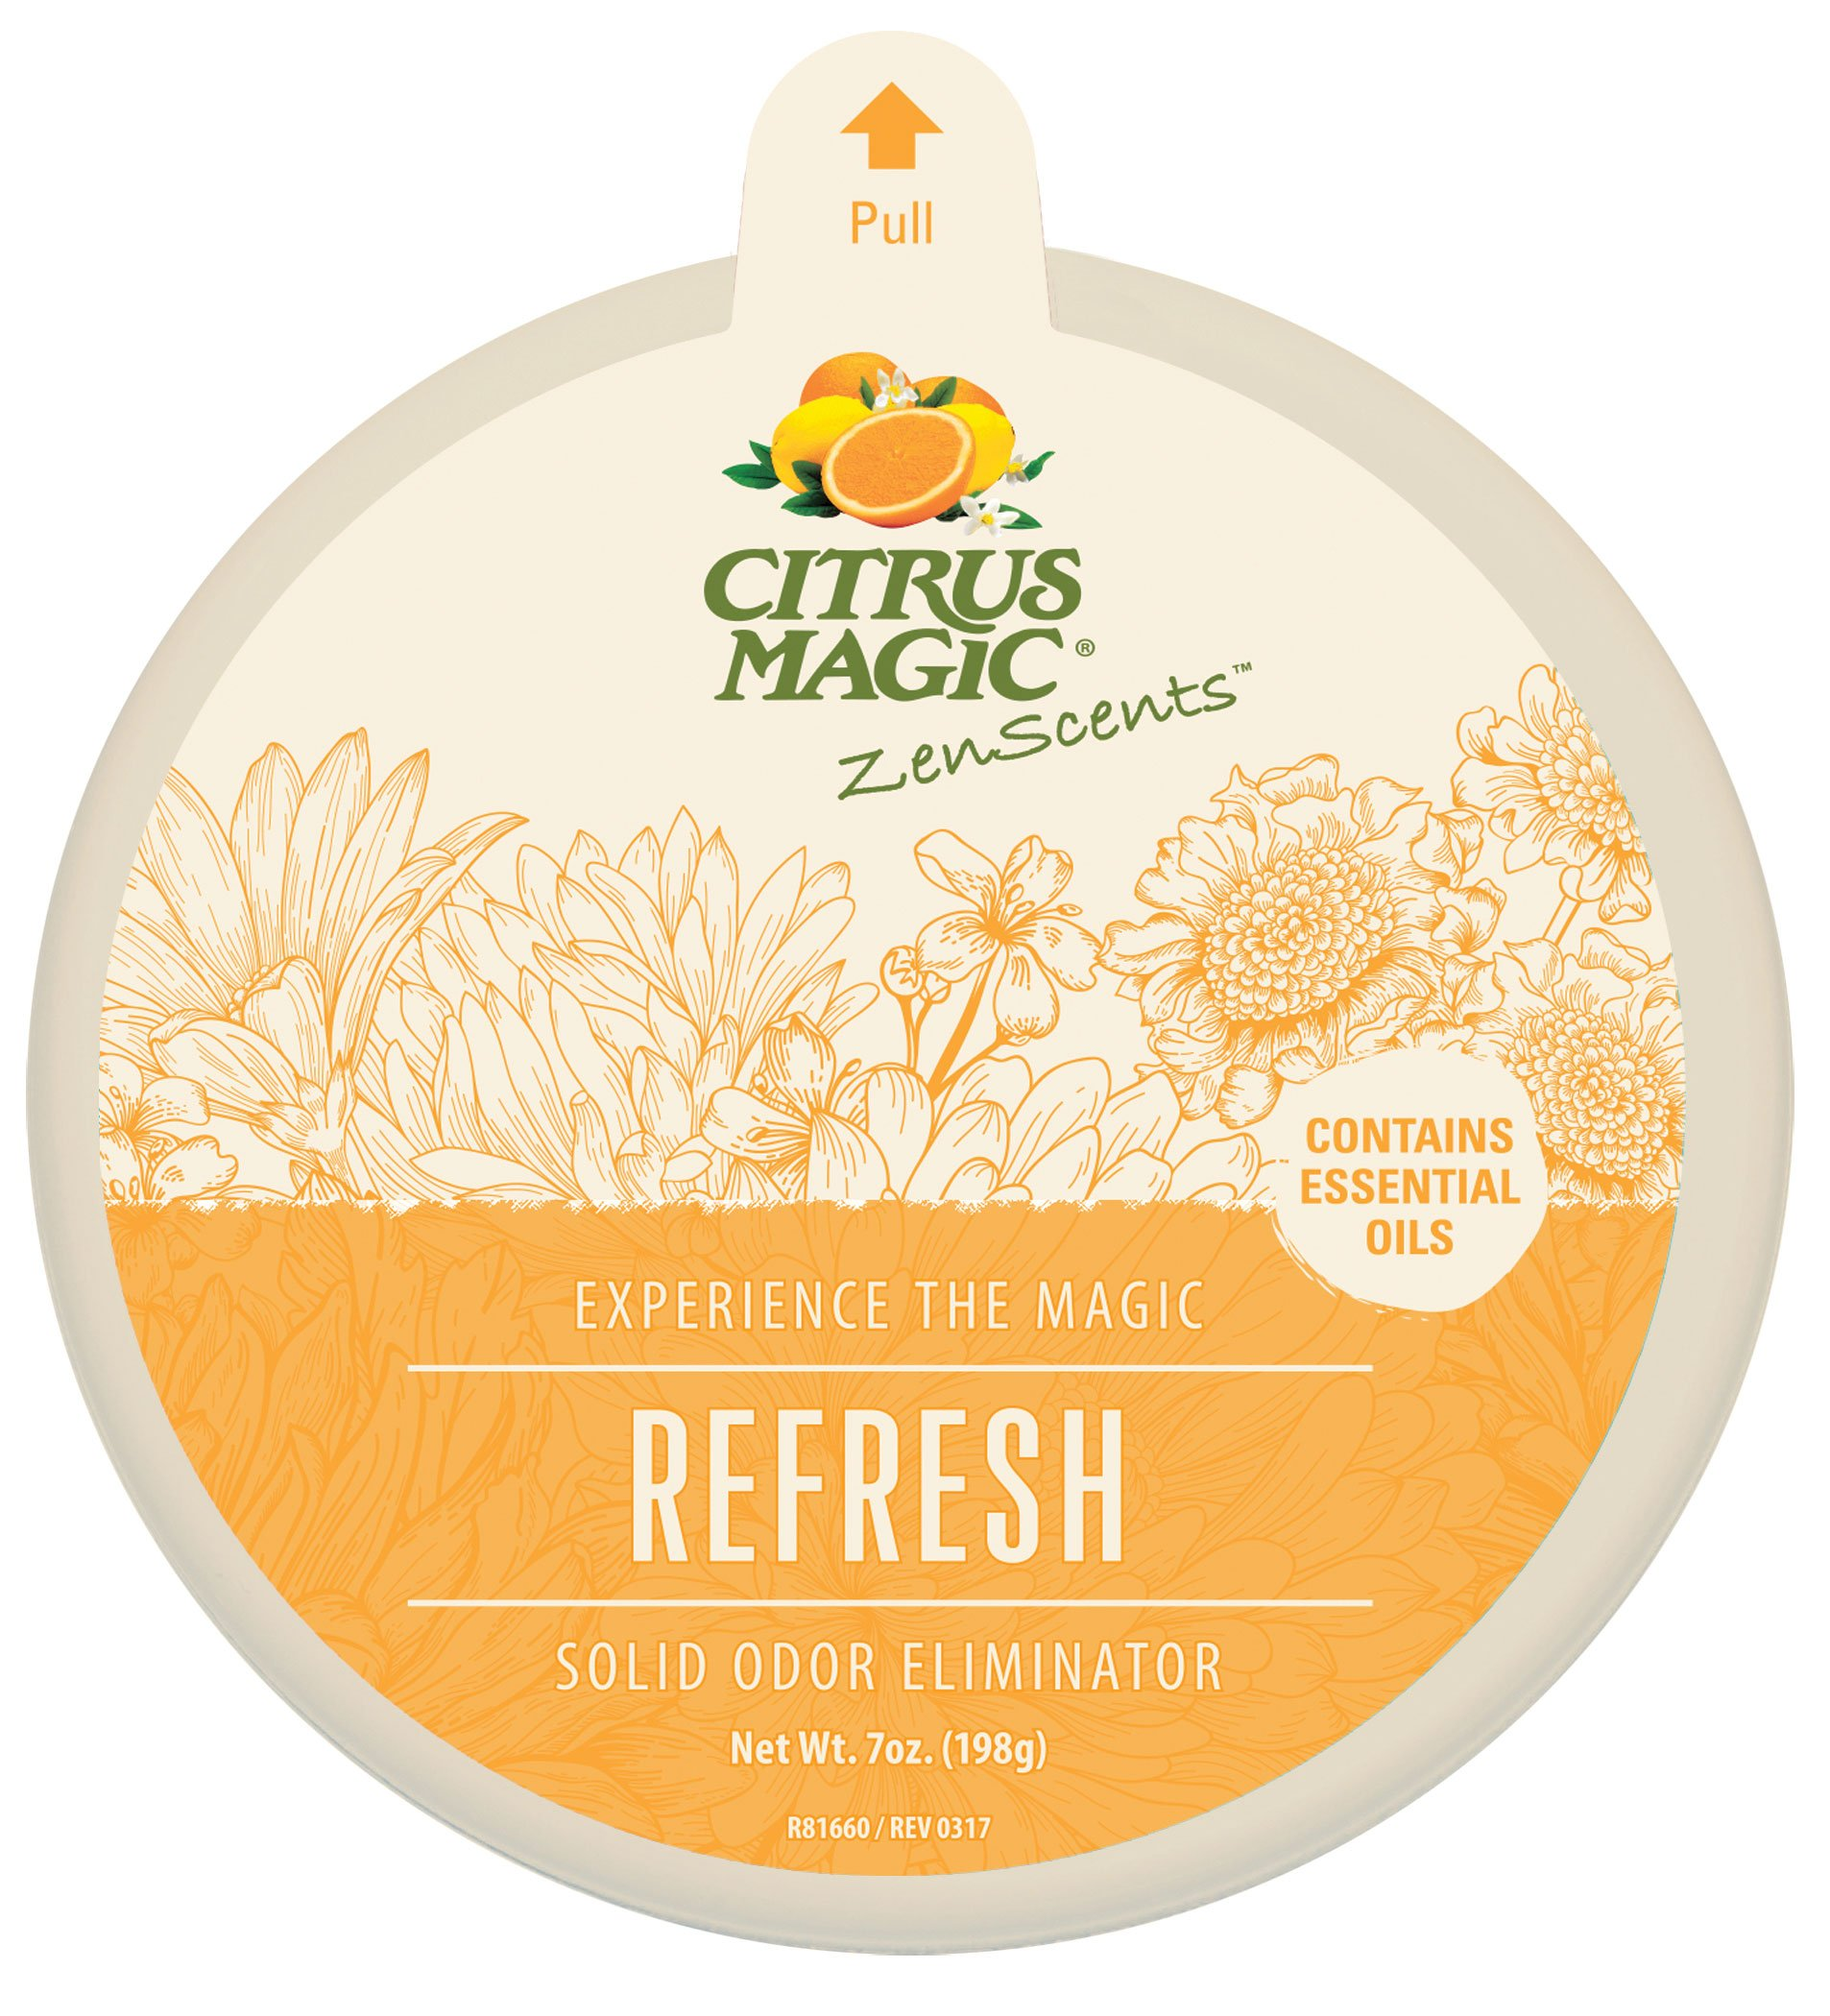 Citrus Magic ZenScents Aromatherapy Solid Air Freshener Refresh, Pack of 3, 7-Ounces Each